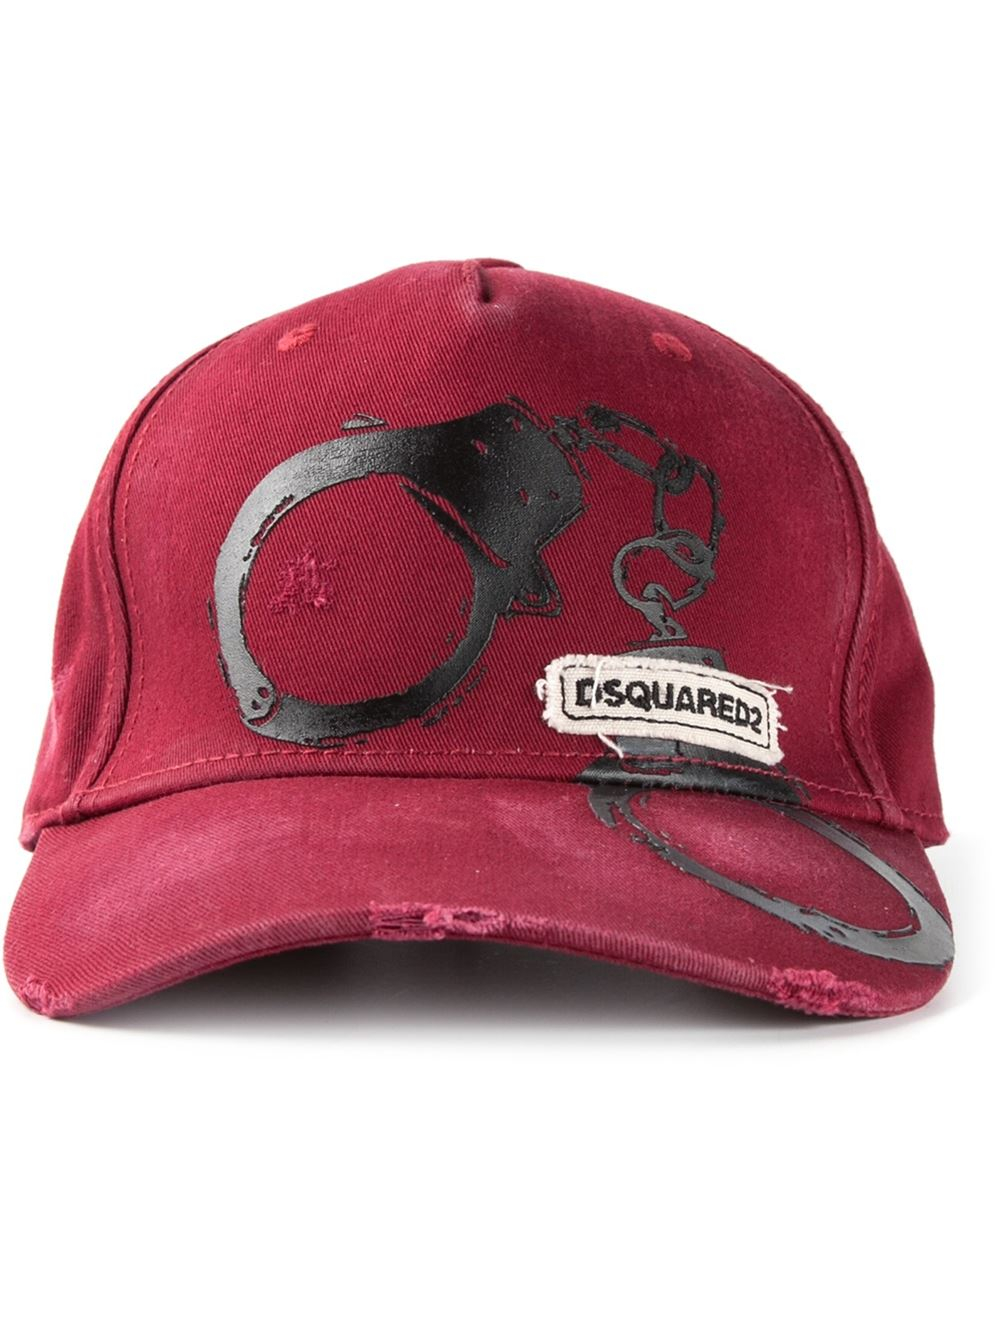 78ab99a77eb Lyst - Dsquared² Distressed Cap in Red for Men